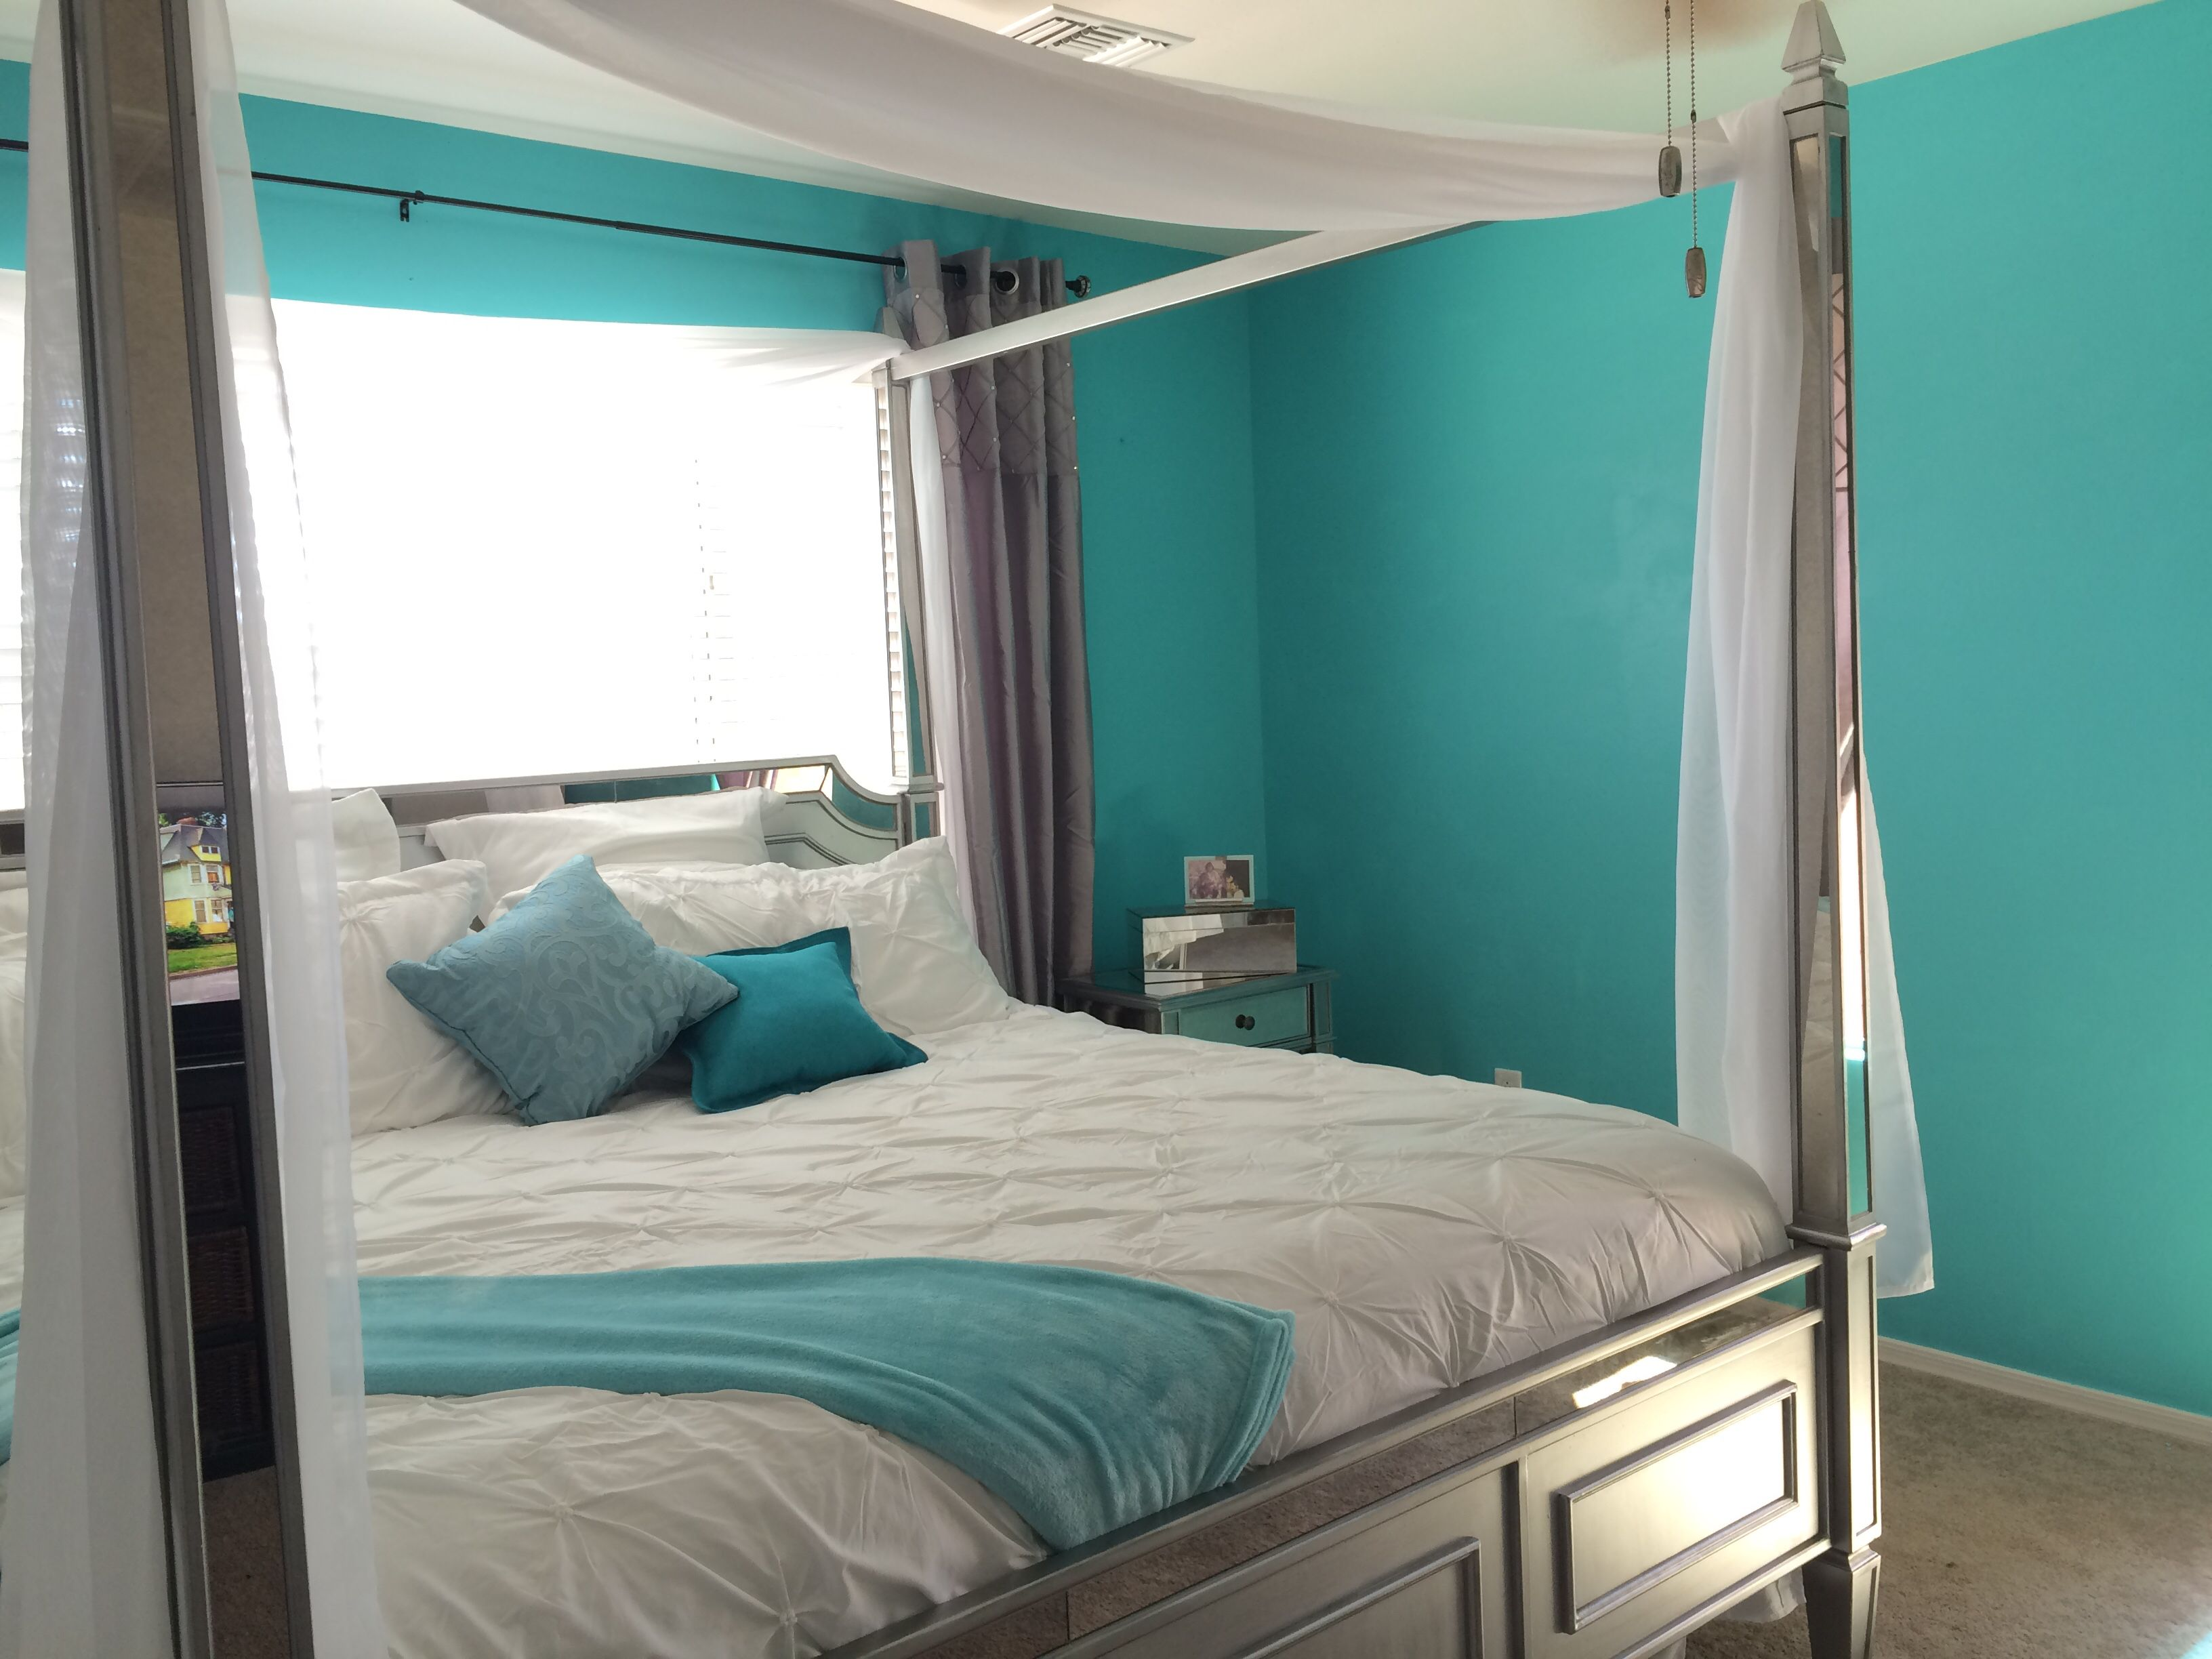 Hayworth Collection From Pier 1 Canopy Bed Grey N Teal Paint